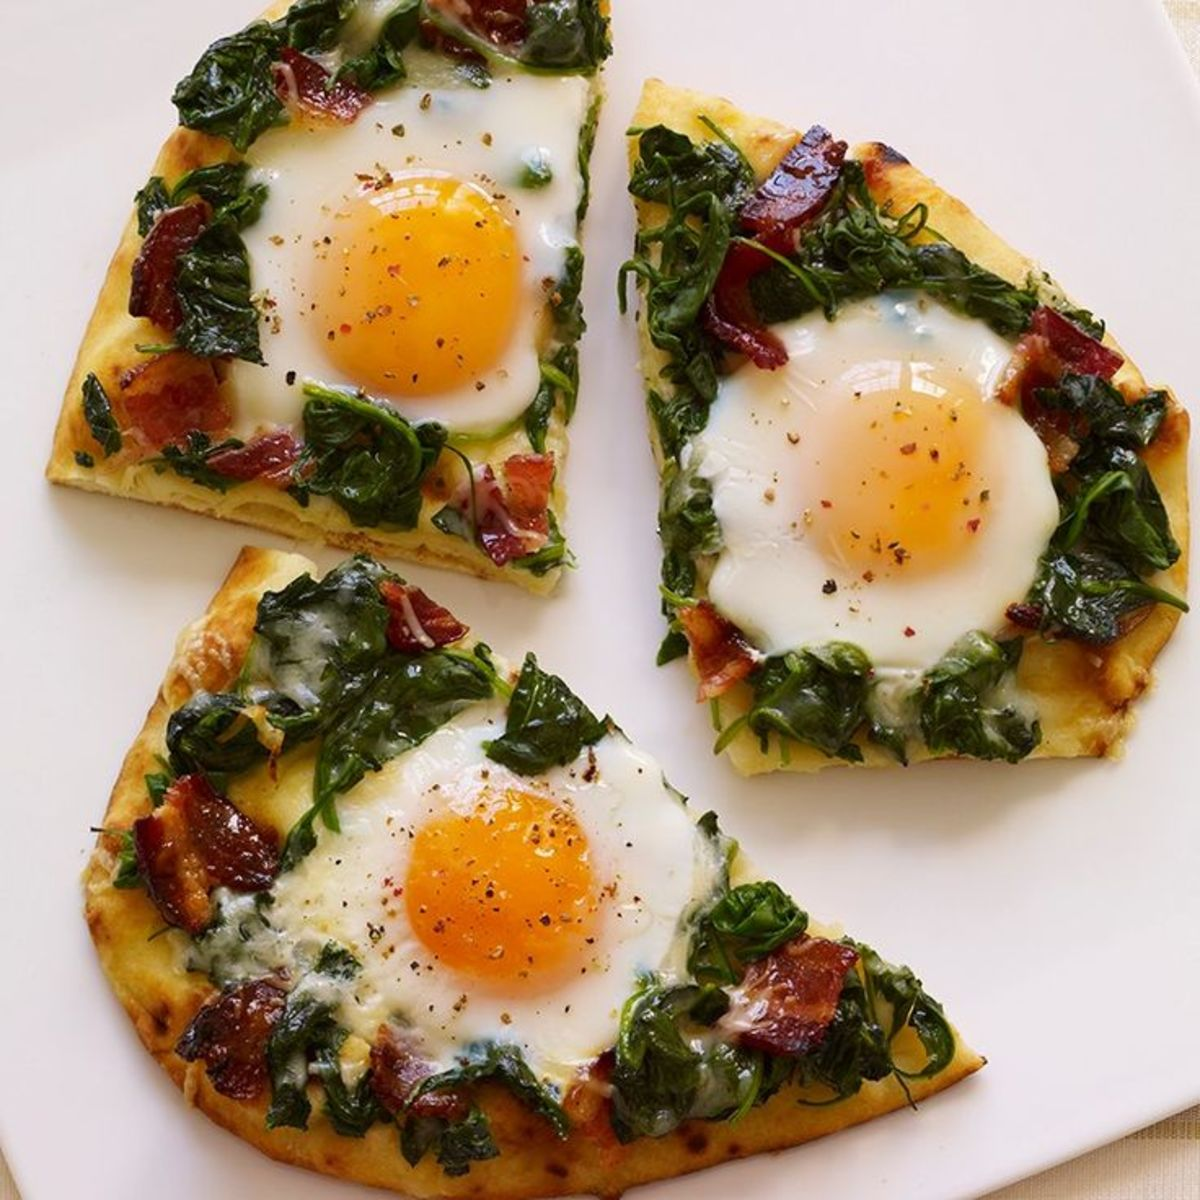 Breakfast Pizza With Sunny-Side Up Eggs, Spinach, and Bacon